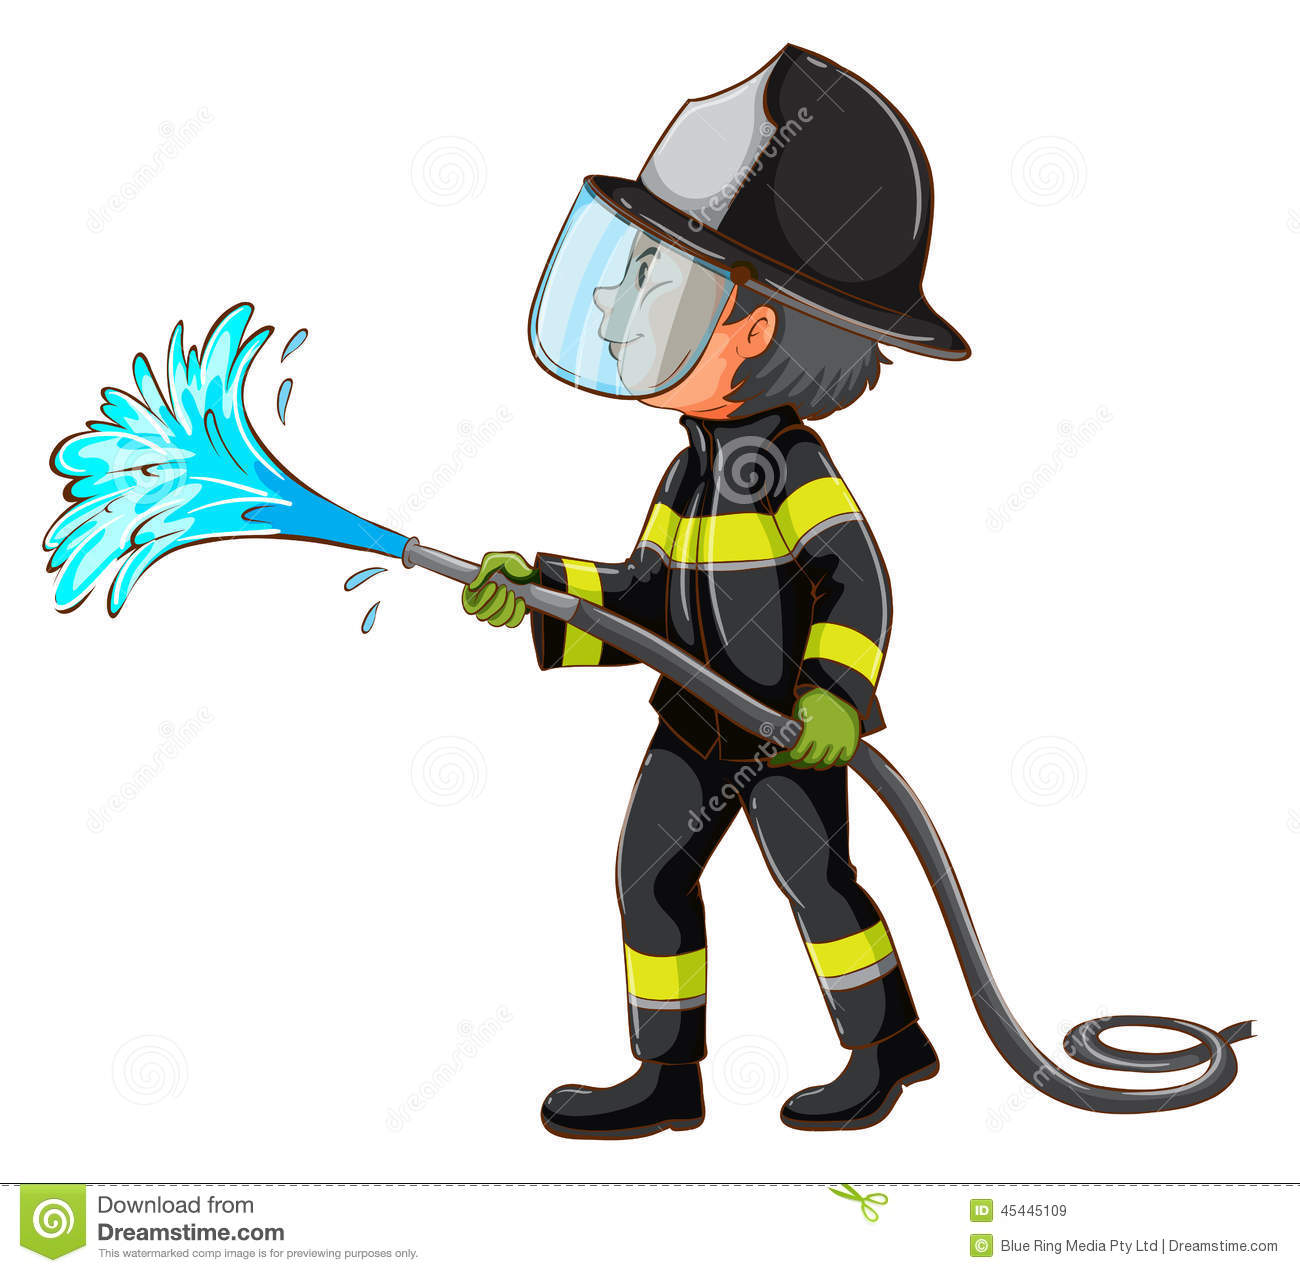 ... of a simple drawing of a fireman holding a hose on a white background